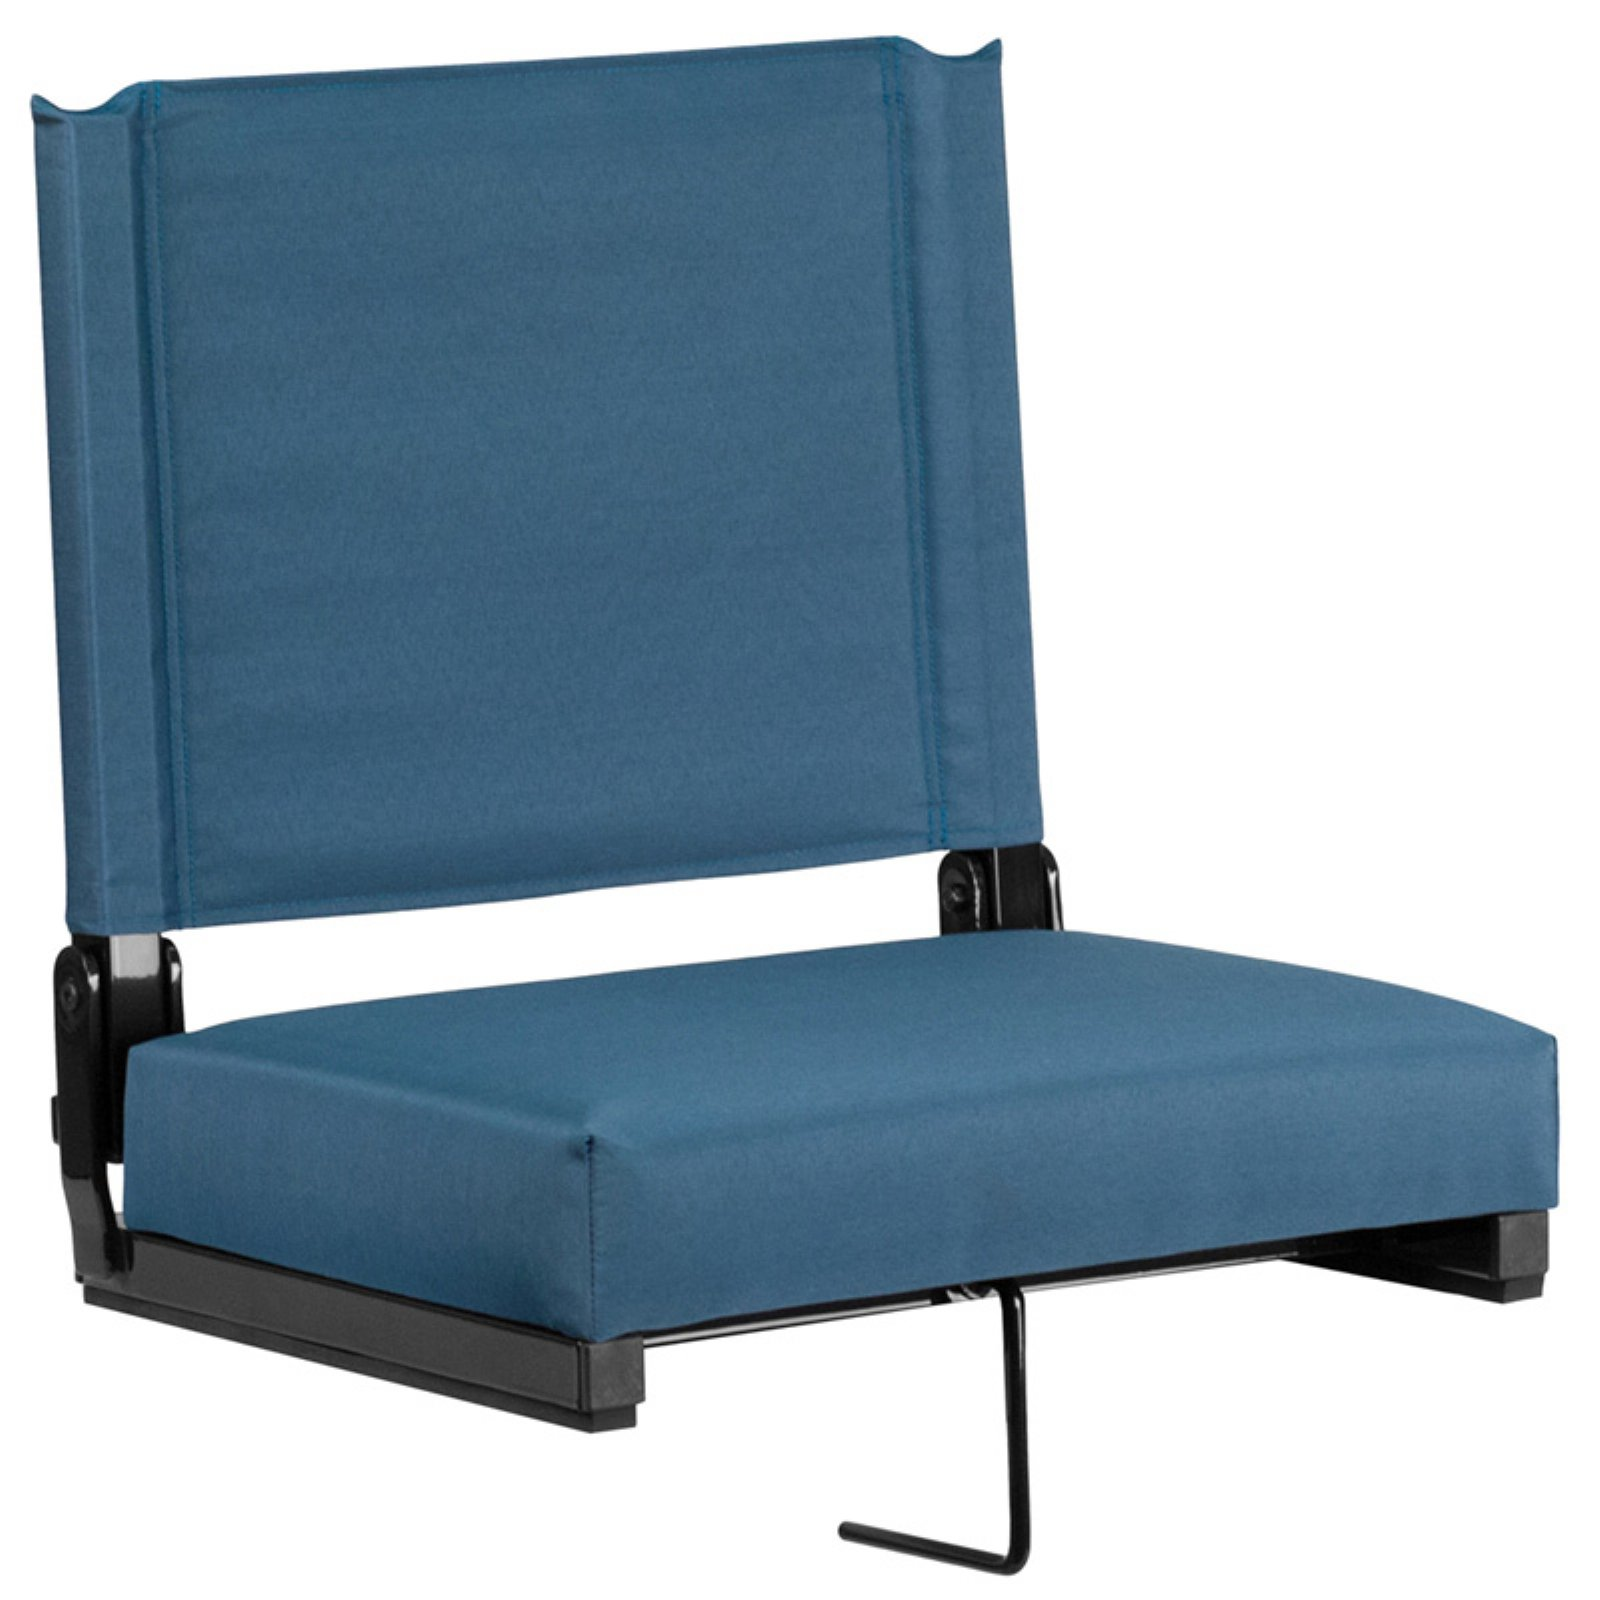 Flash furniture game day seats by flash with ultra padded seat in multiple colors walmart com